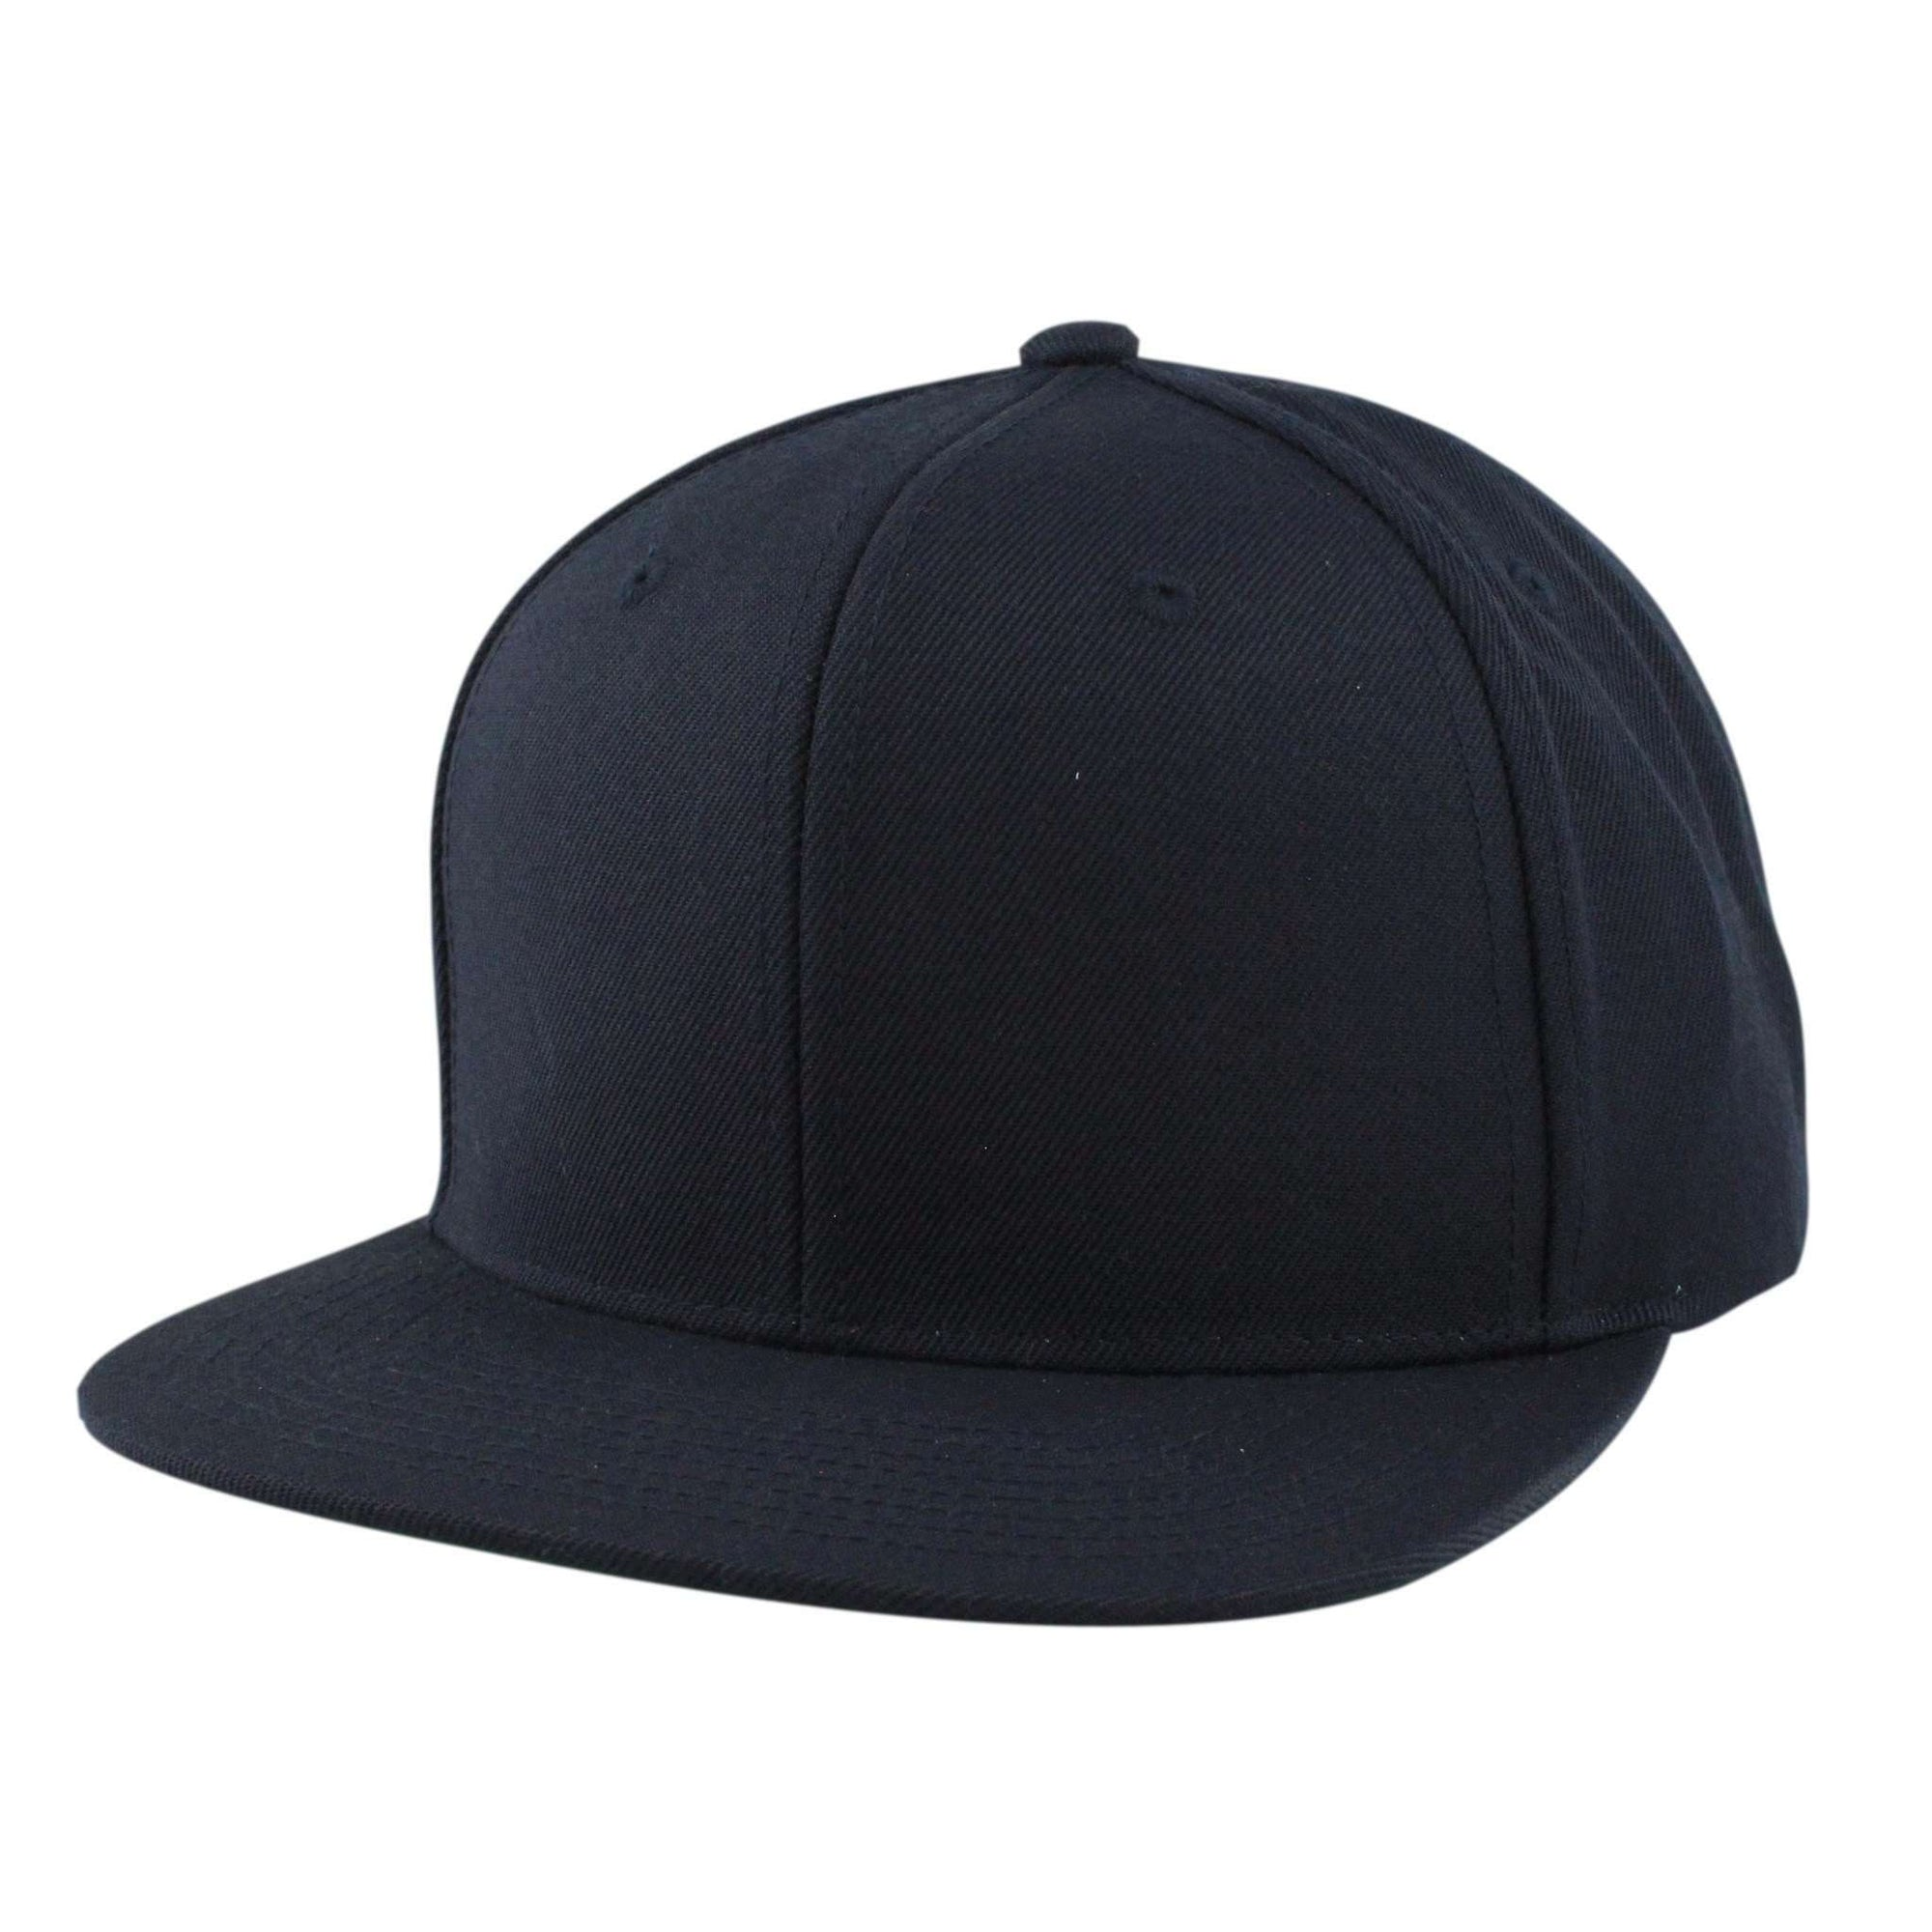 c05afb0f promo code for navy blue snapback f9d60 c3074